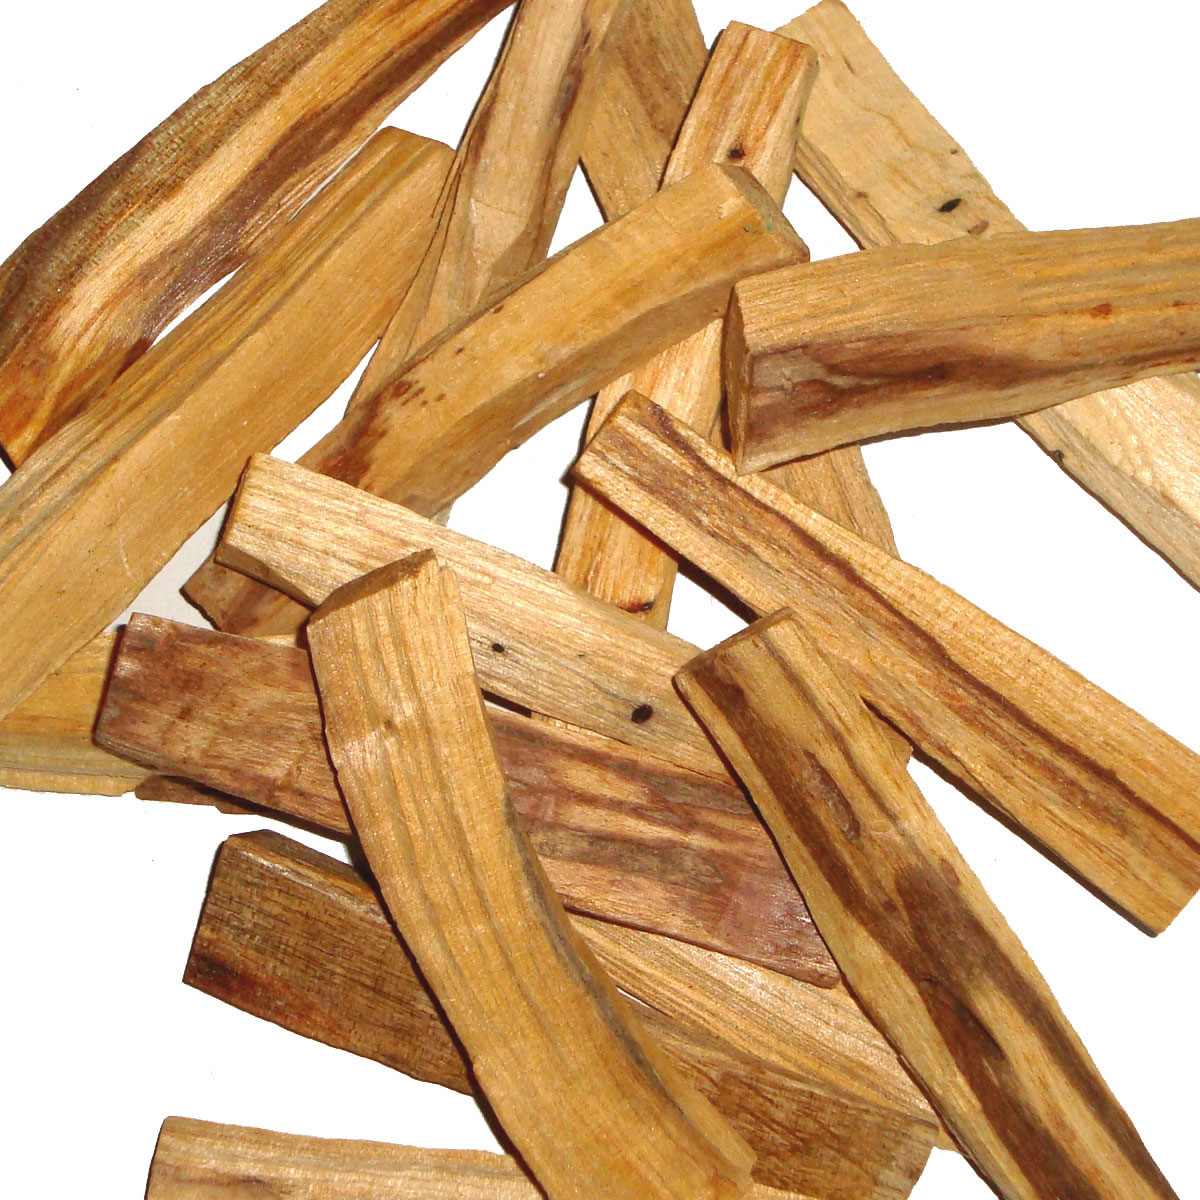 PALO SANTO Incense Sticks THICK STICKS - PERU - BULK - 200g